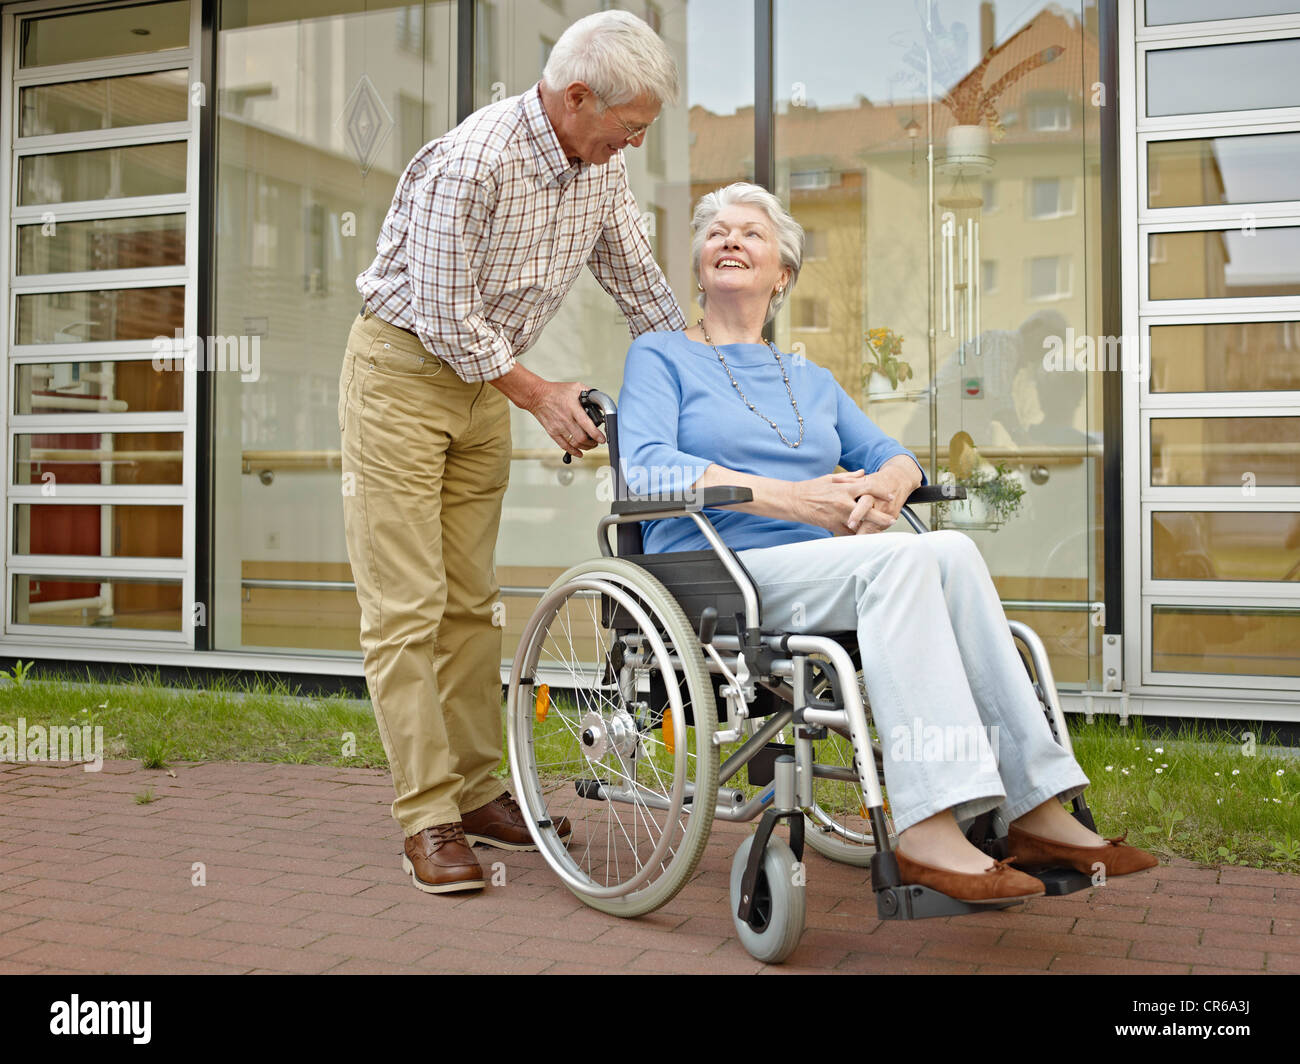 Germany, Cologne, Senior man pushing woman in wheelchair - Stock Image